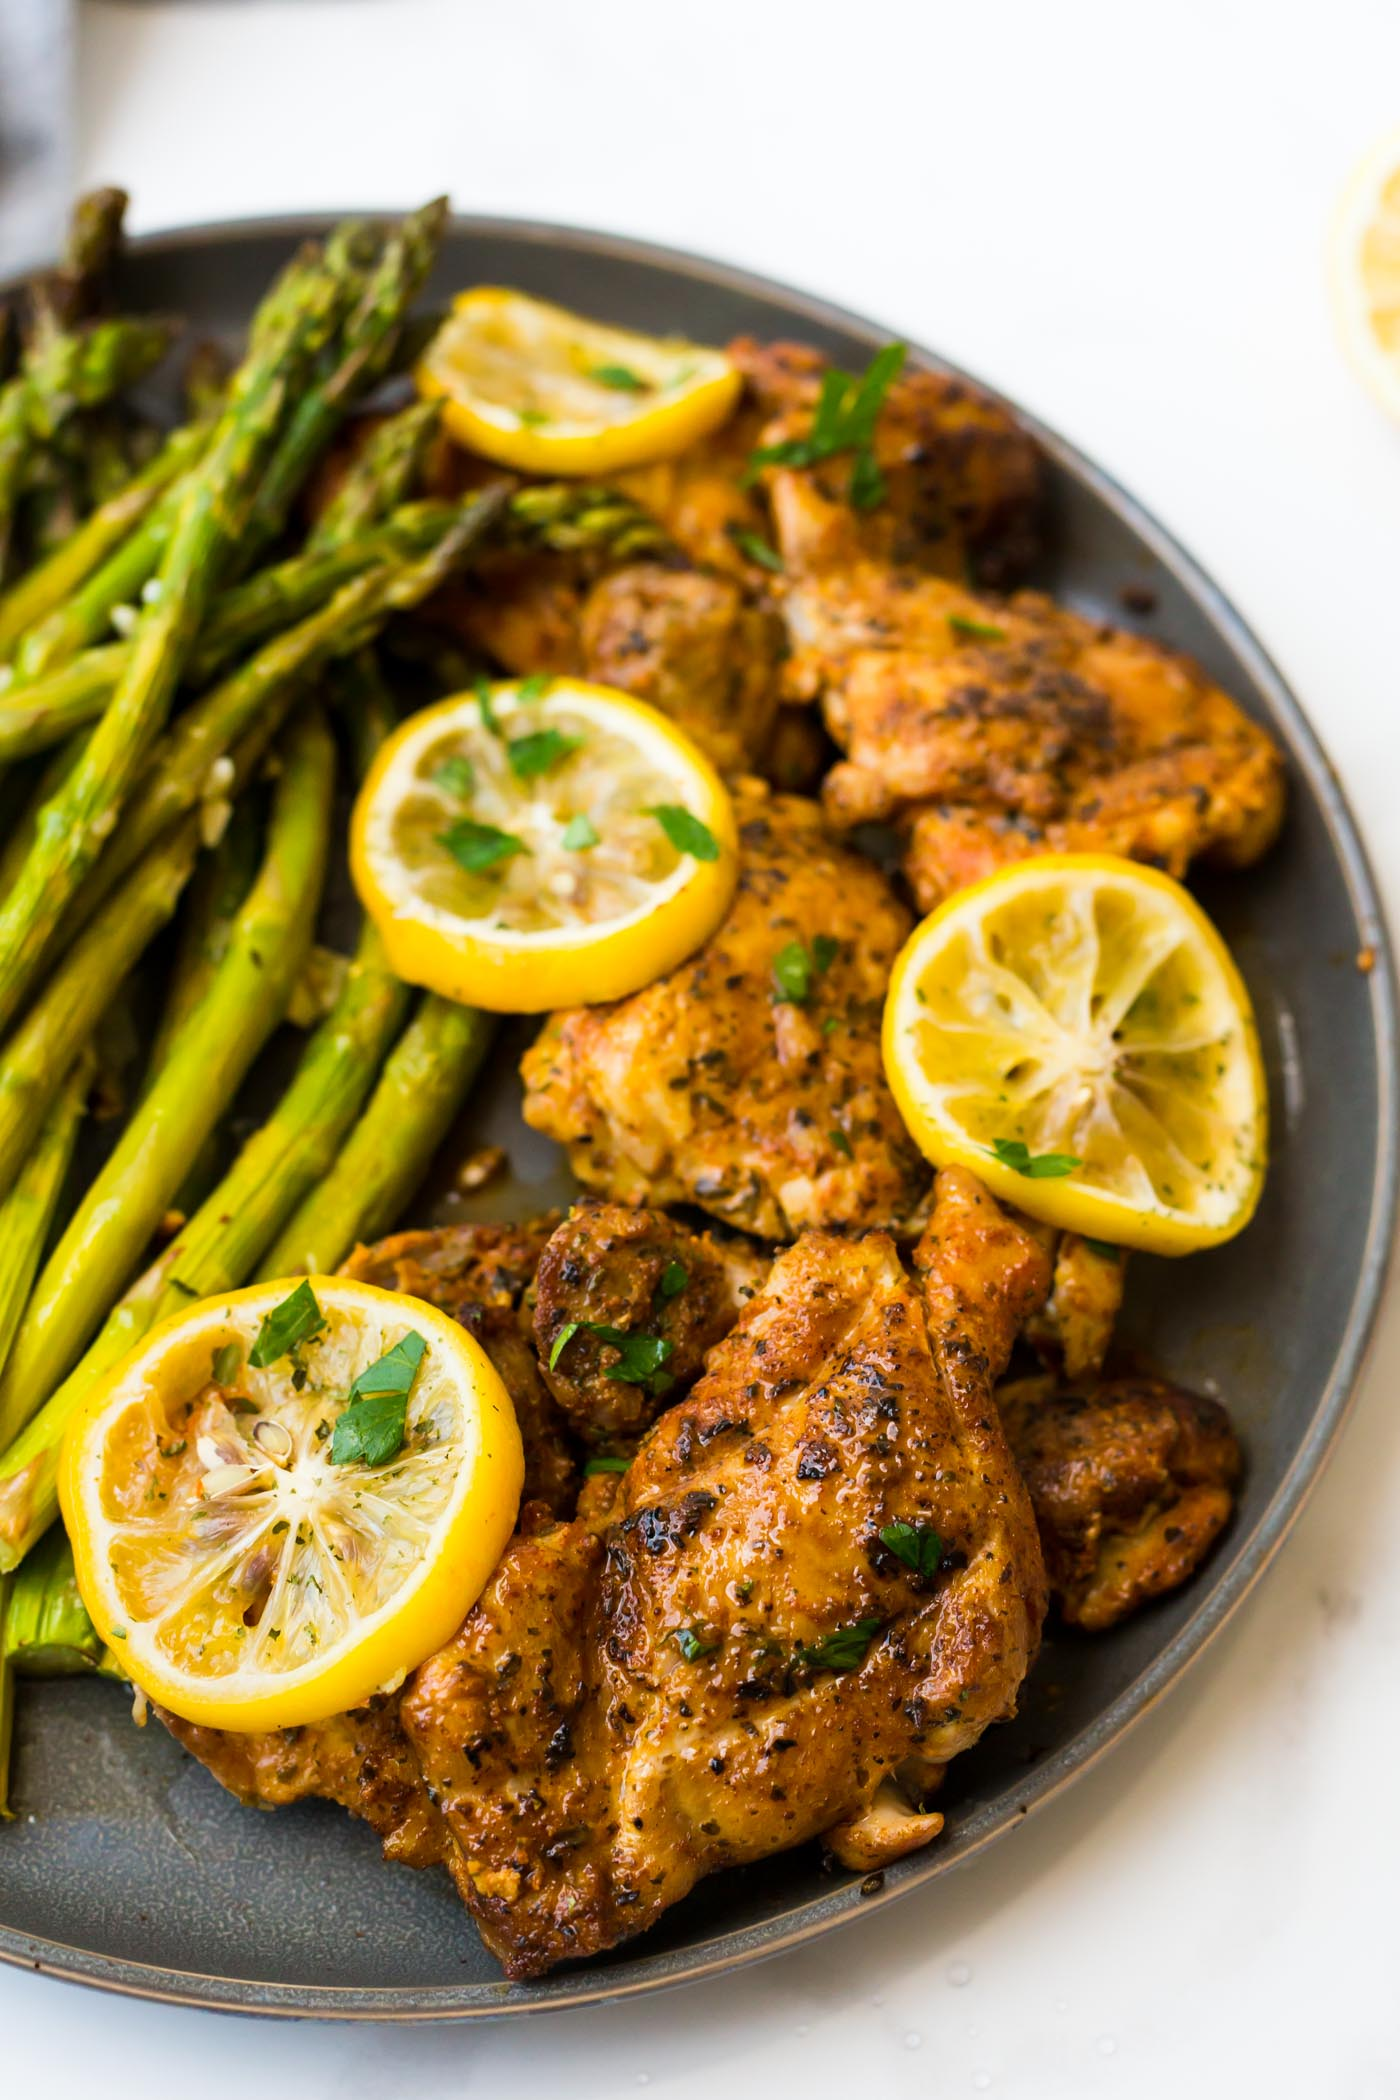 chicken thighs, sliced lemons, and asparagus on a grey plate on white background